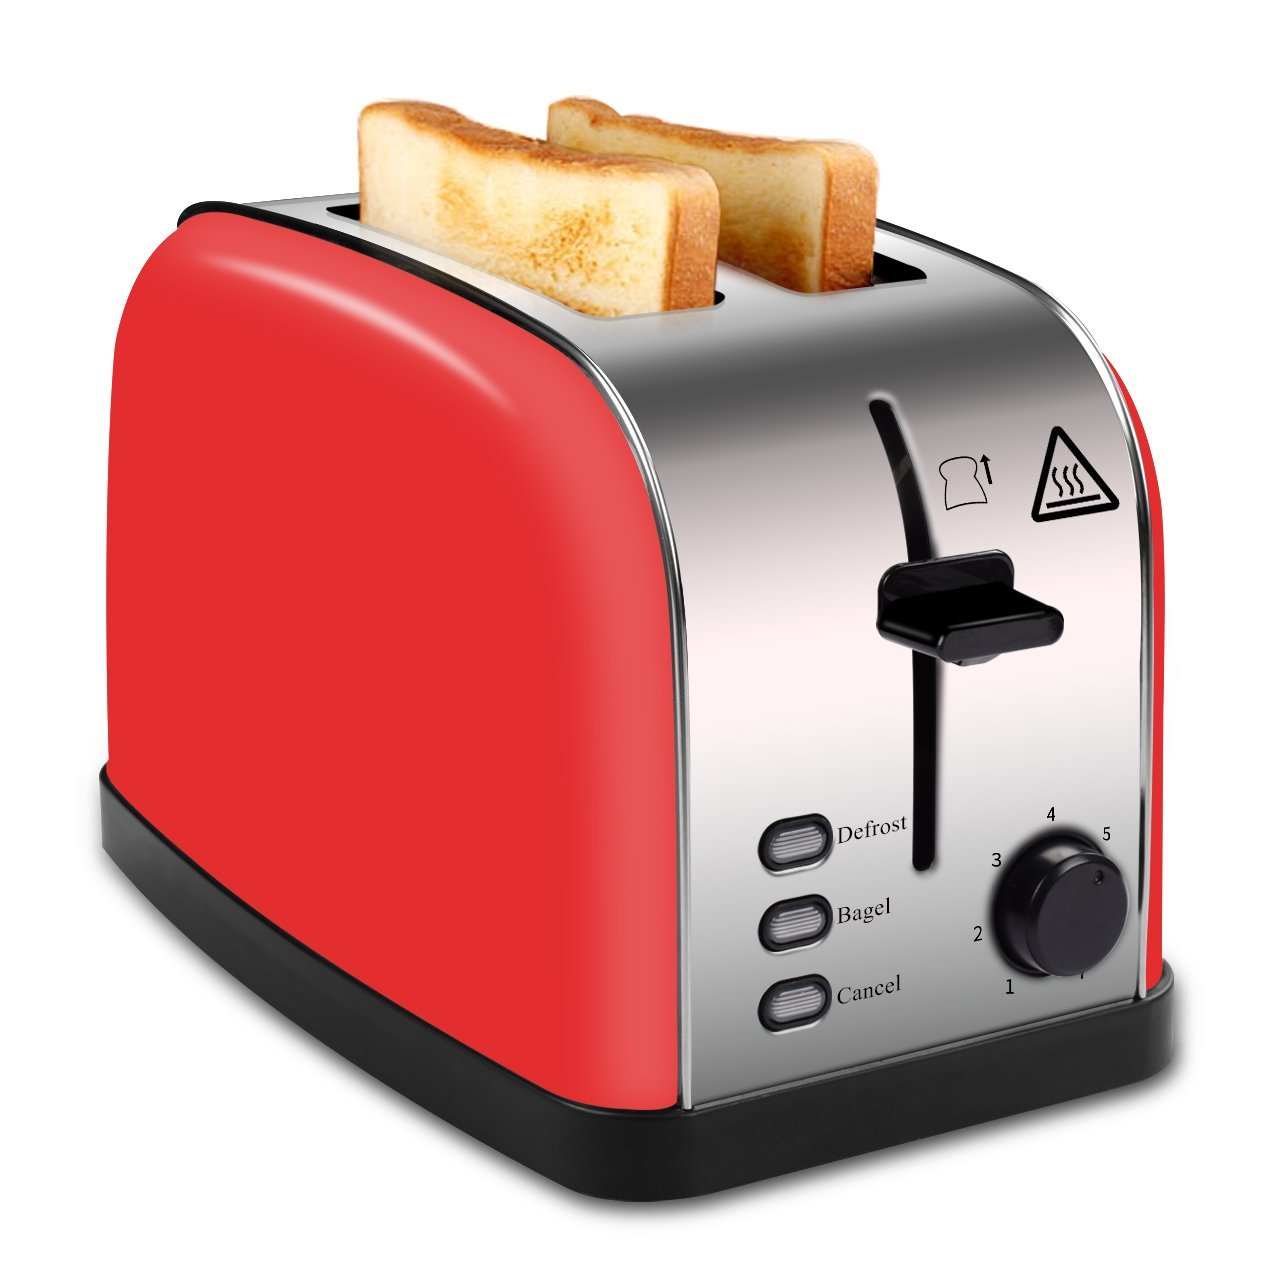 MADETEC 2 Slice Wide Slot Toaster Red for Bread Bagel, Brushed Stainless Steel Toaster with Removable Crumb Tray,High Lift Lever, Defrost, Bagels and 7 Shade Setting